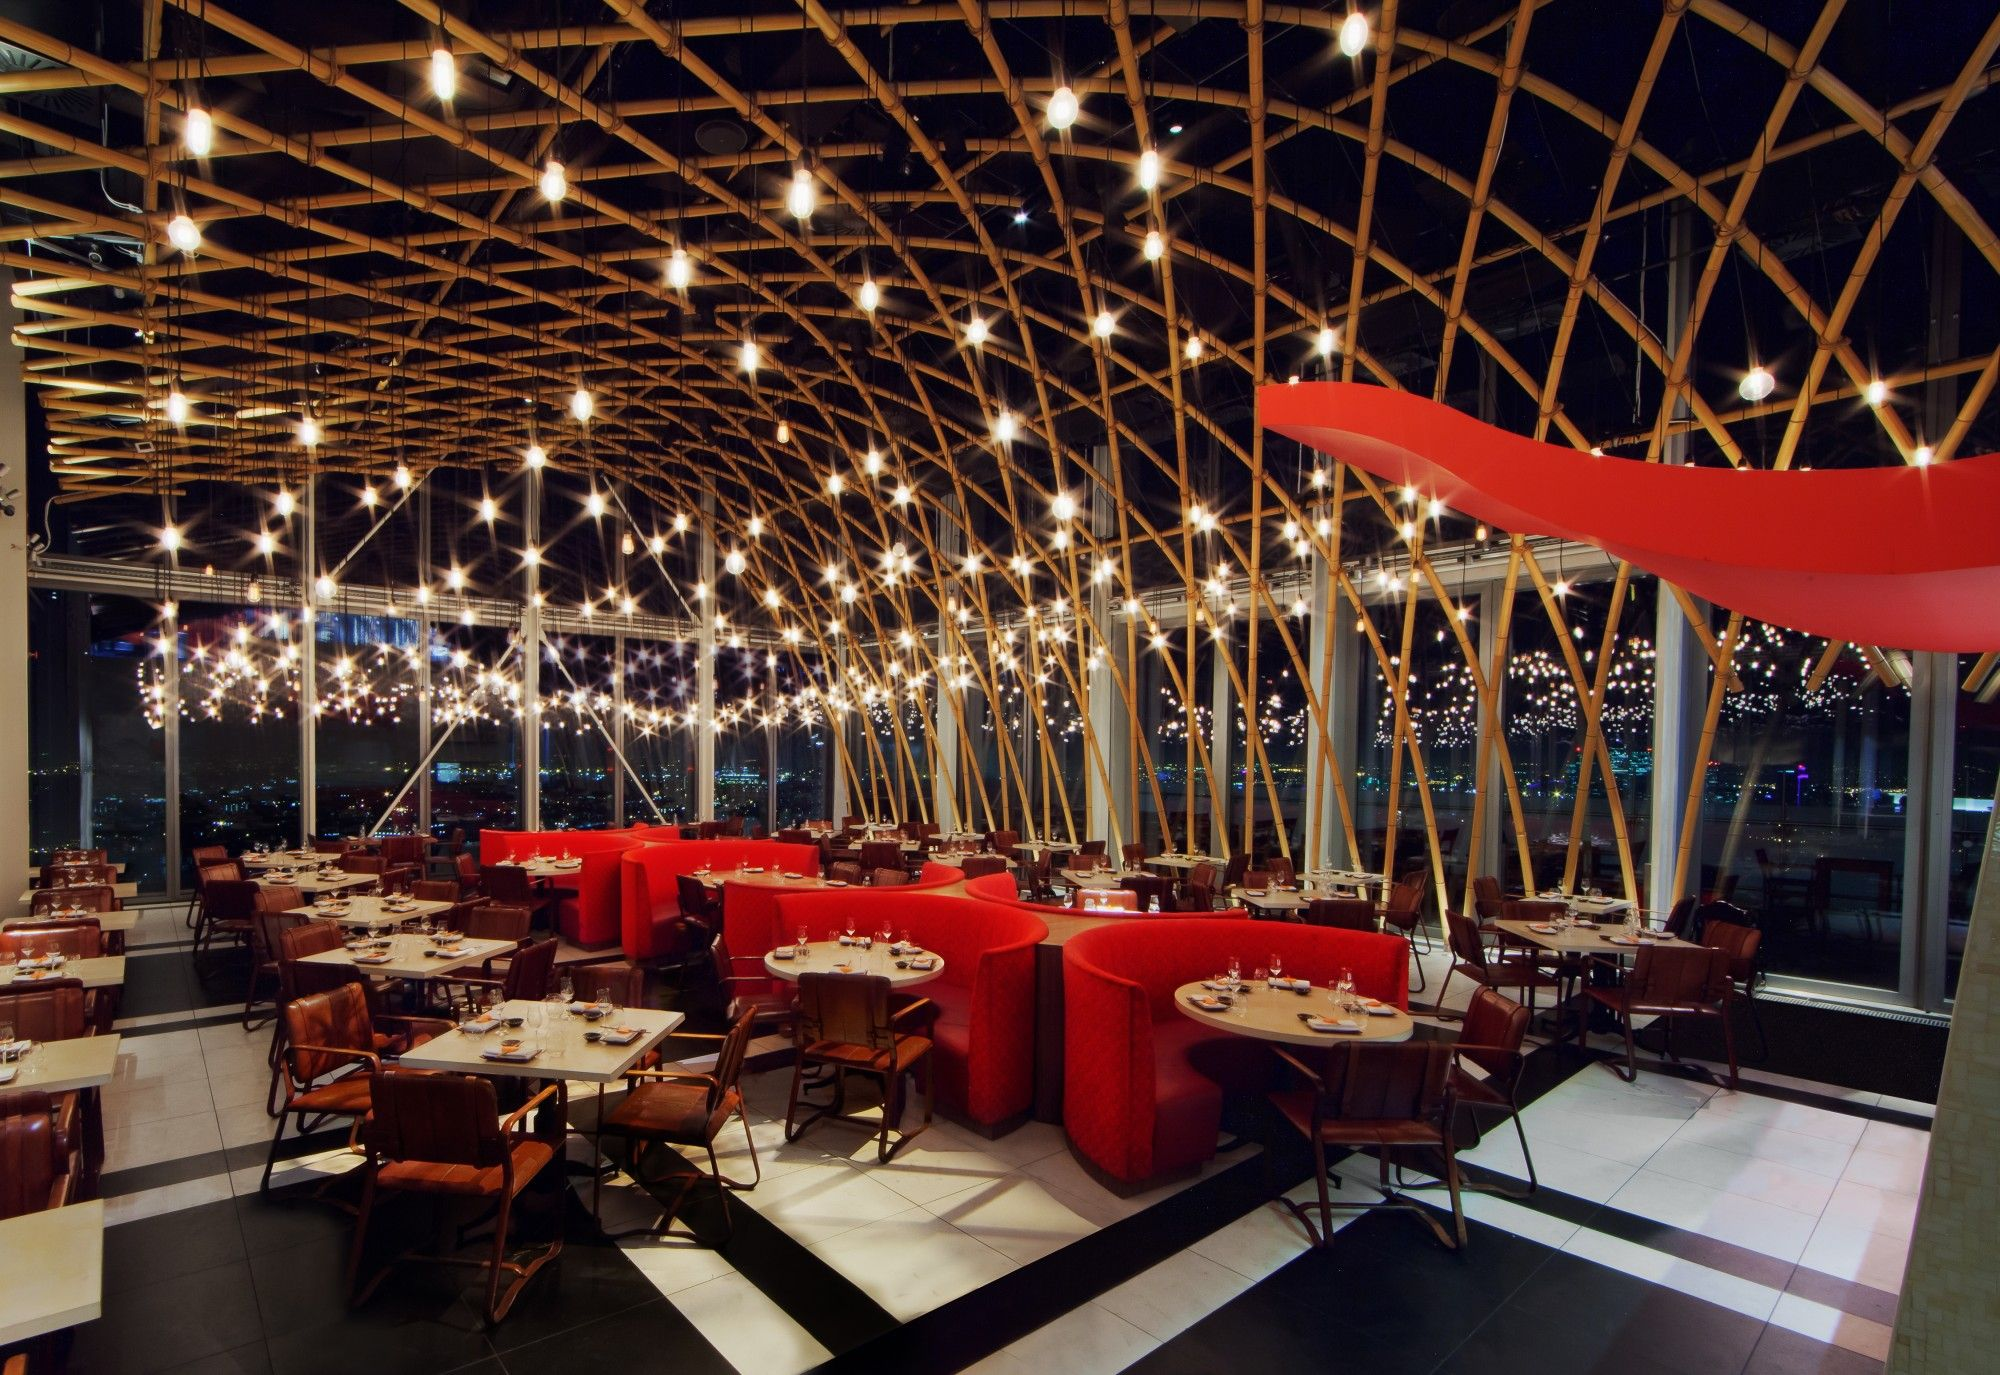 Sushisamba Just Below Duck Waffle 38th And 39th Floor In The Heron Tower Building Has Outdoor Bar Design Restaurant Bar Design Awards Luxury Restaurant